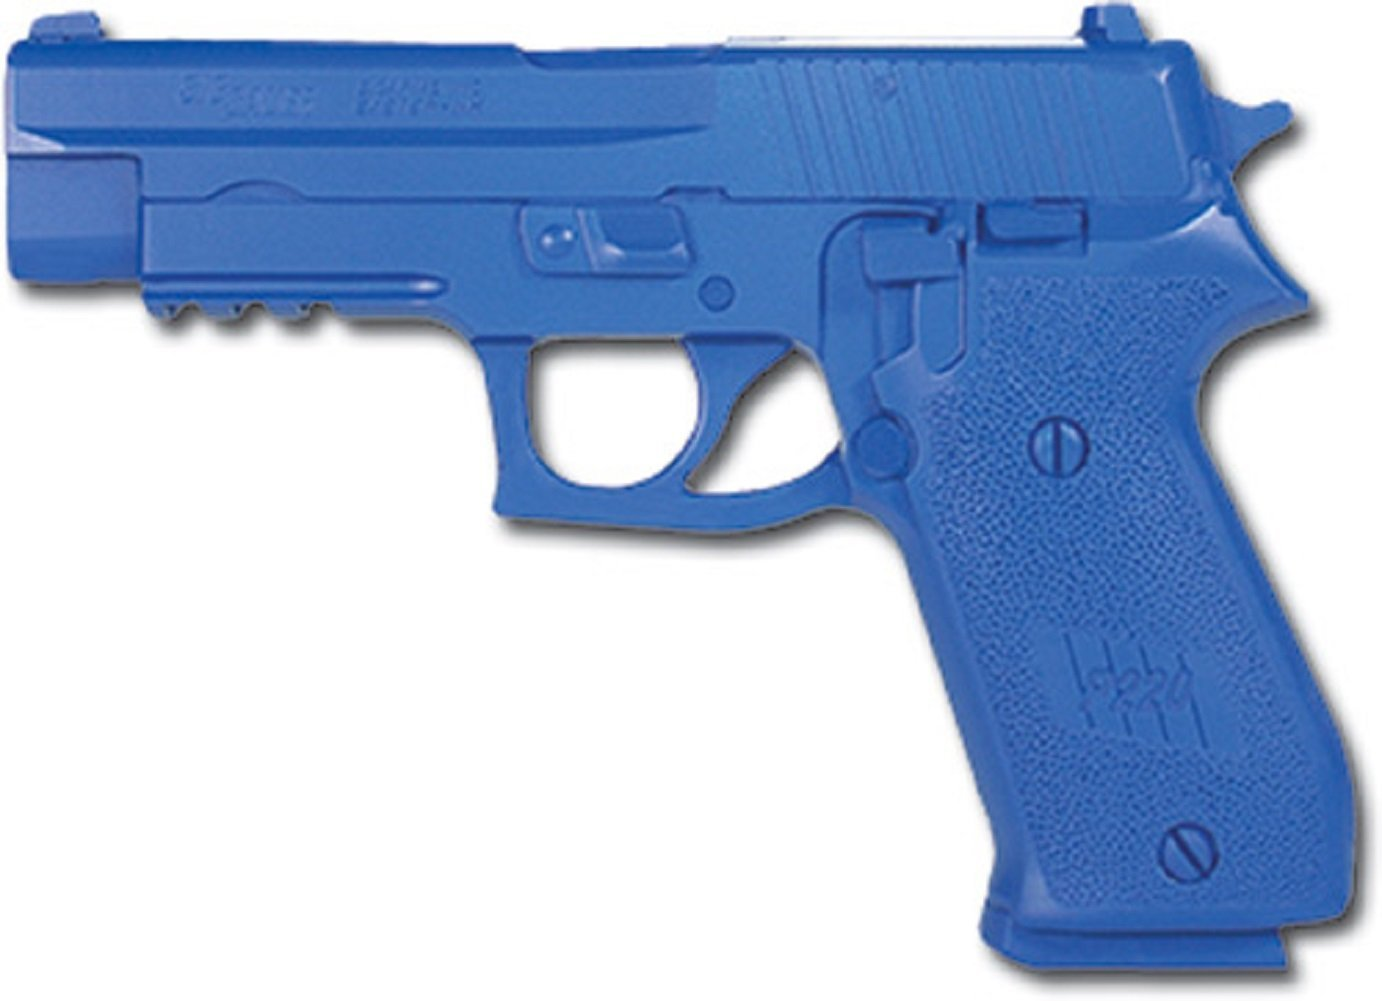 Blueguns SIG P220 w/Rails Simulator Blue - CHK-SHIELD | Outdoor Army - Tactical Gear Shop